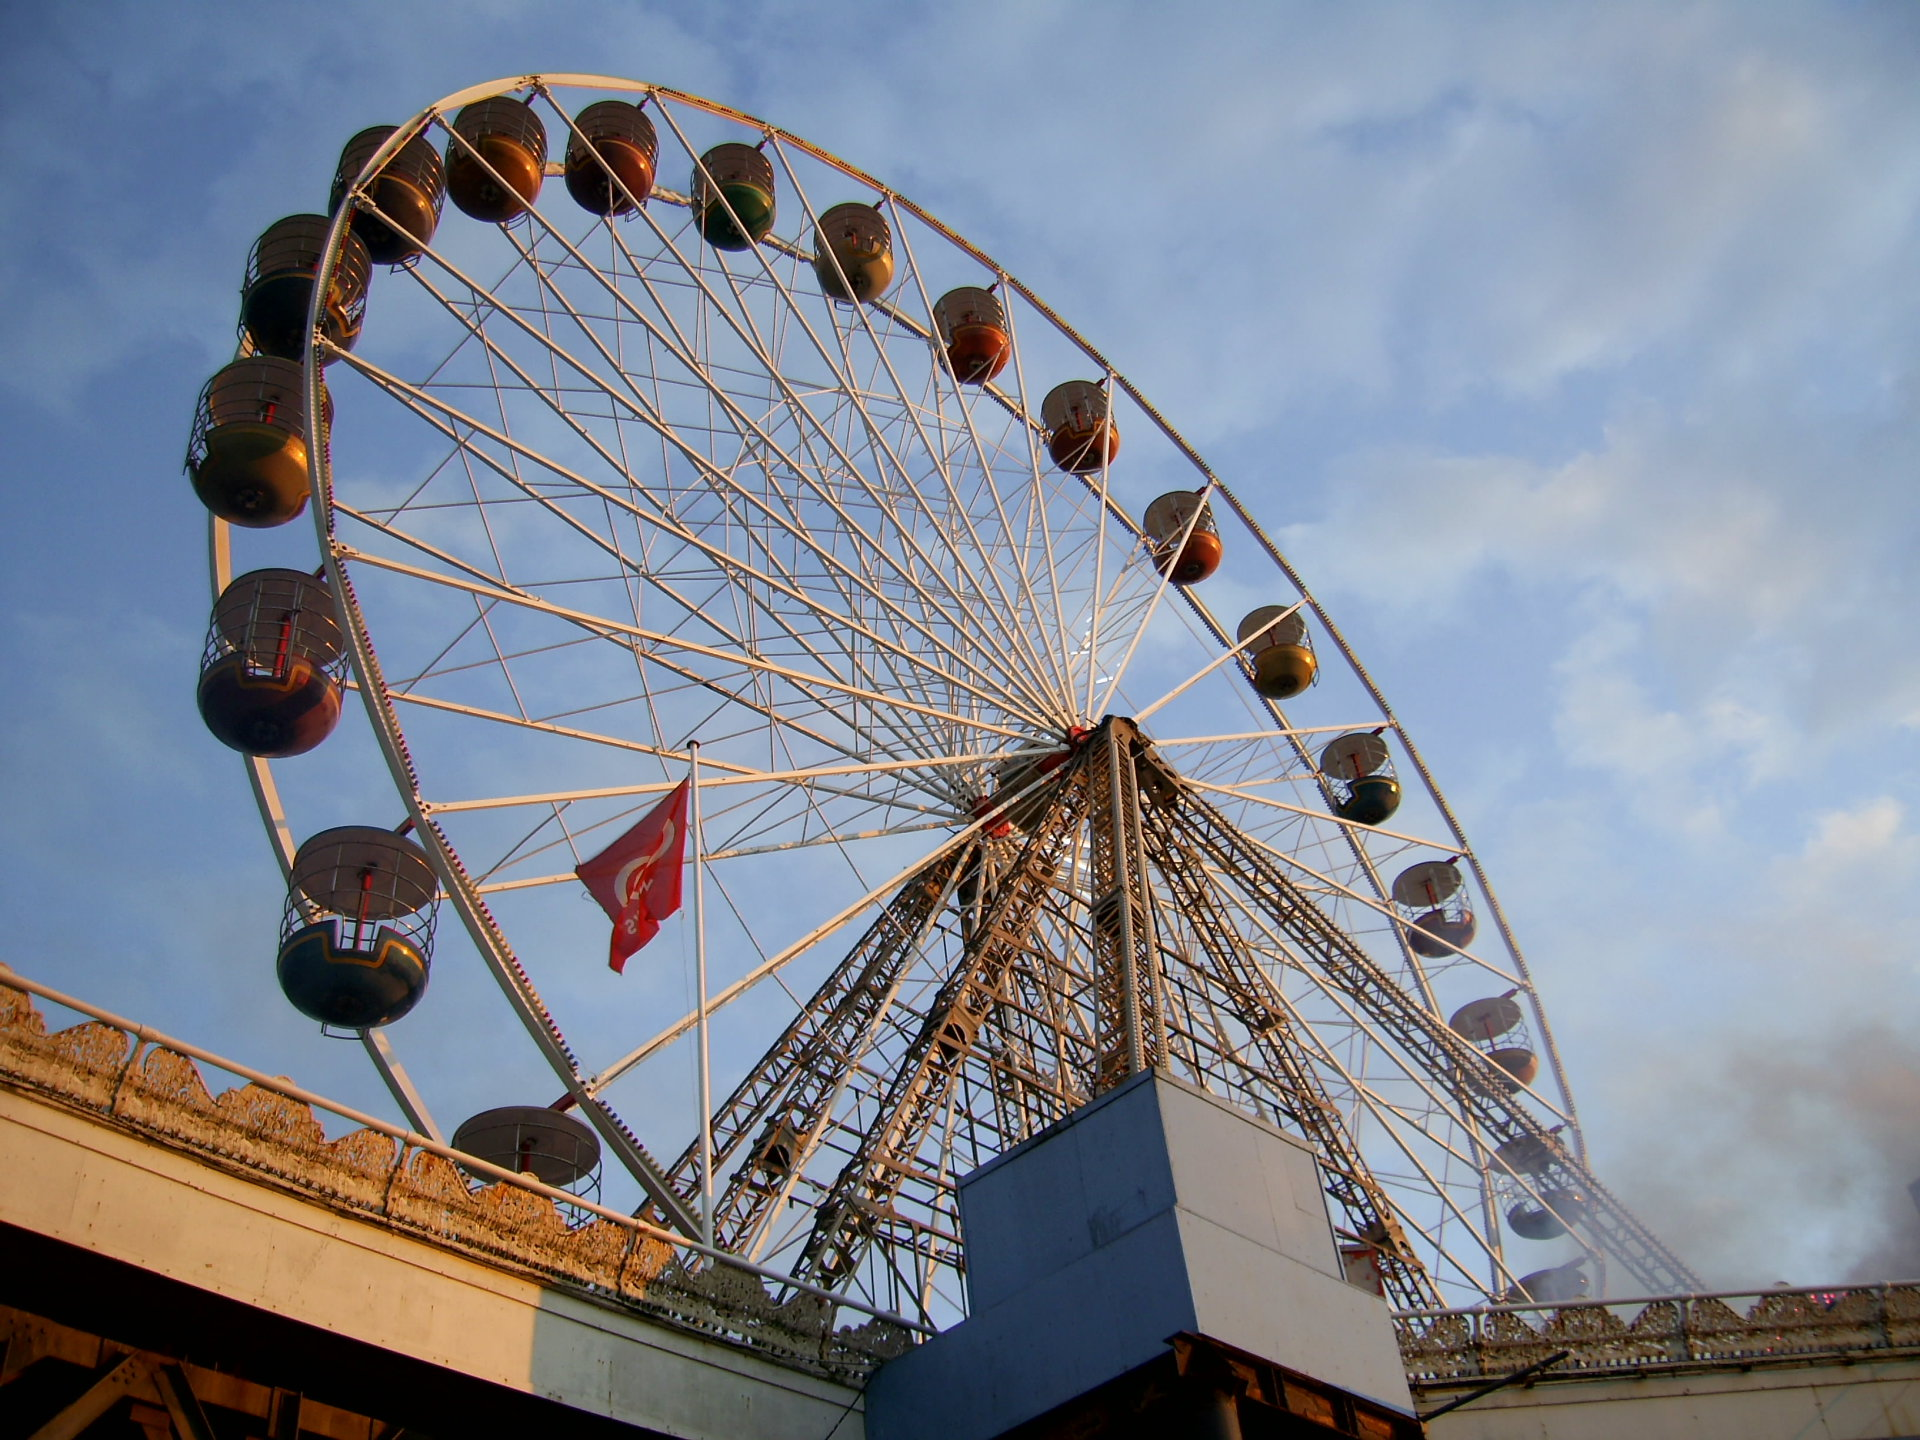 The Big Wheel on the Central Pier Blackpool.